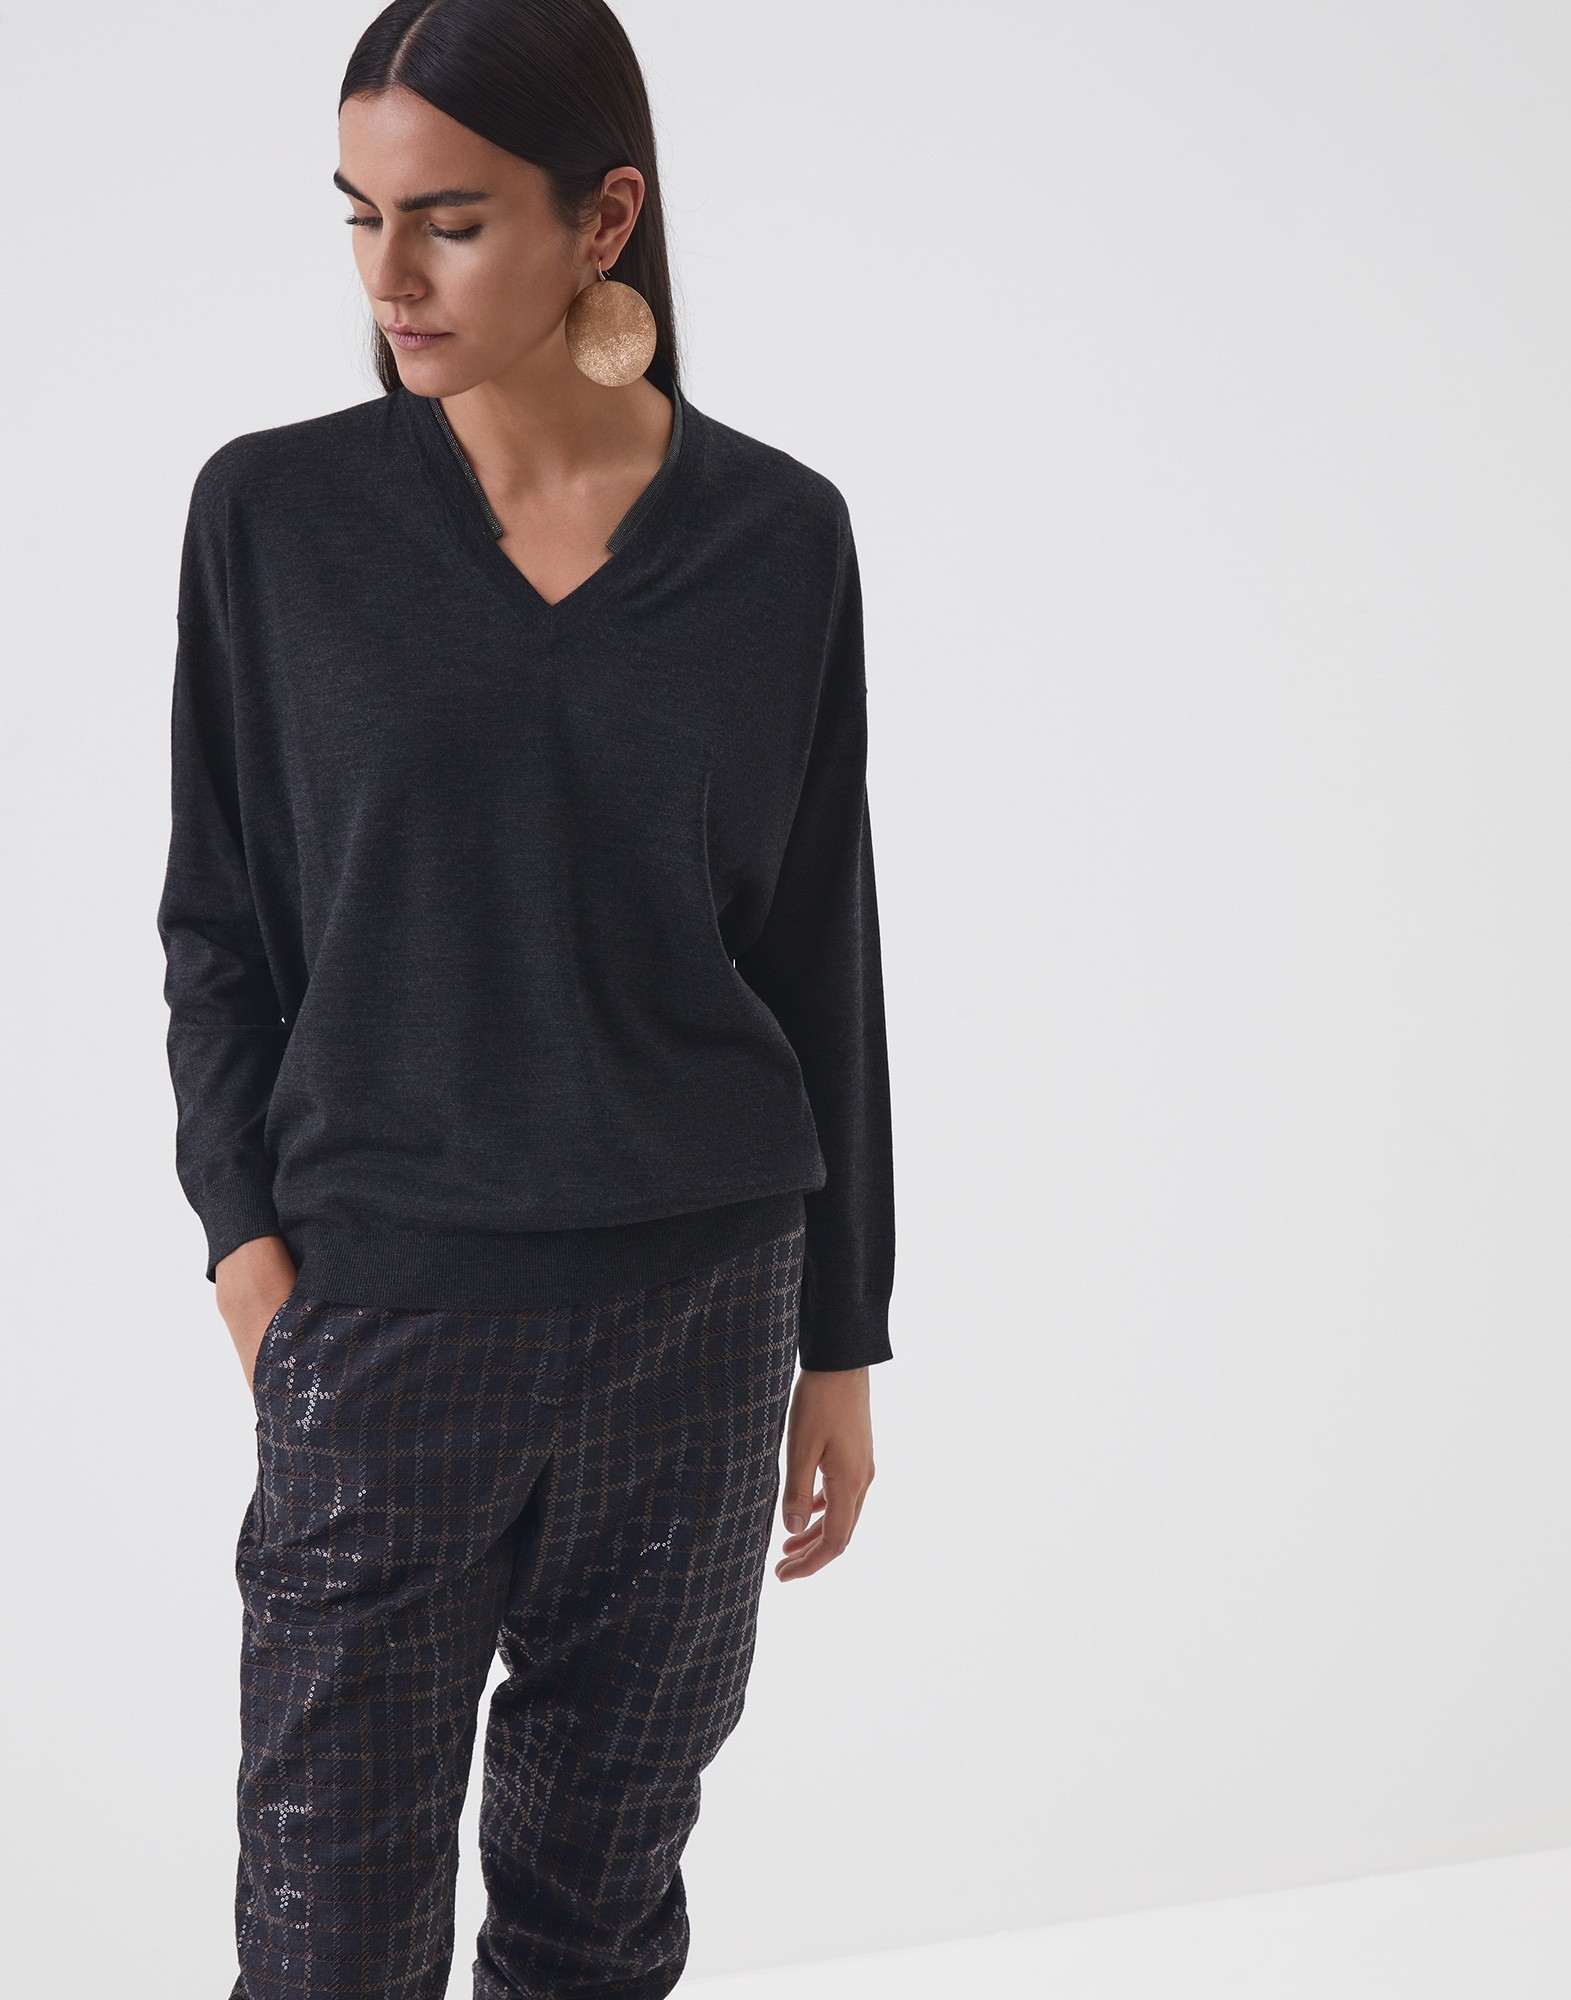 Scoop Neck Anthracite Woman 1 - Brunello Cucinelli